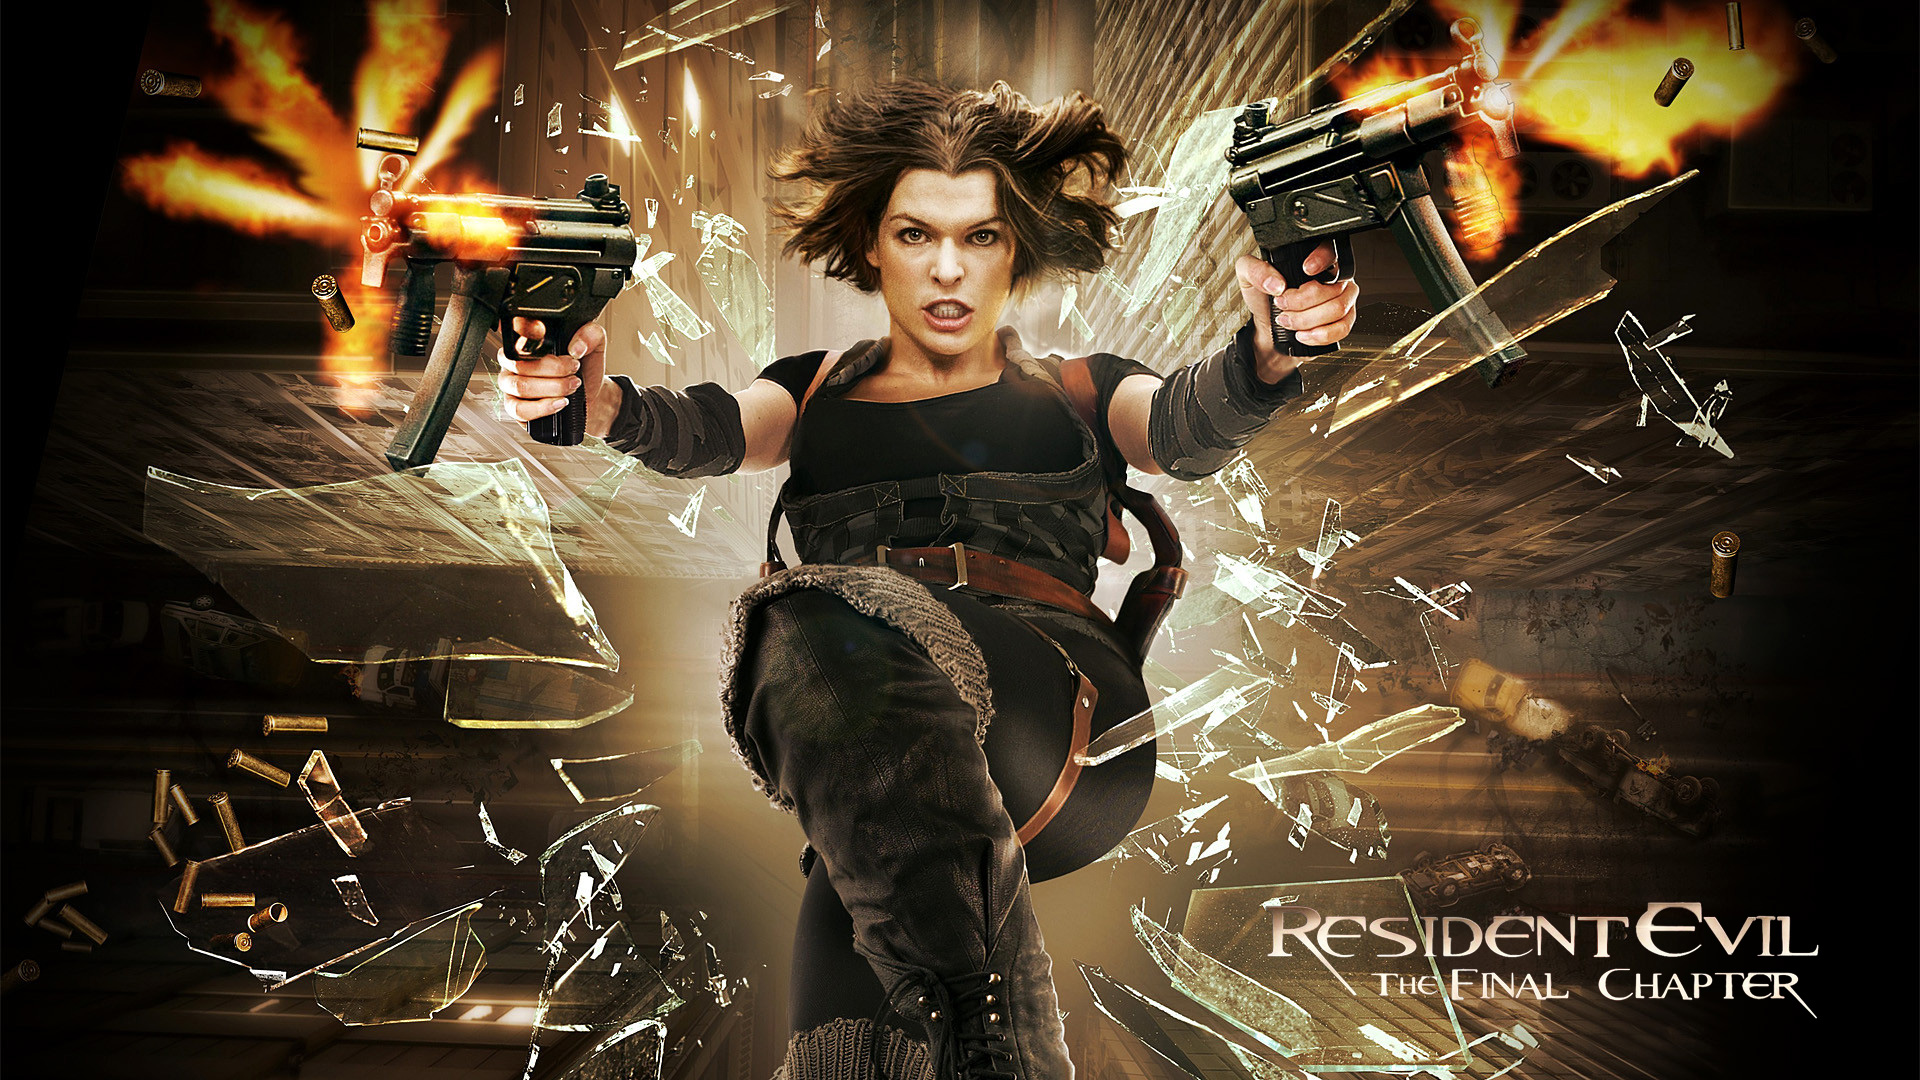 Film Review Resident Evil The Final Chapter Parsi Times